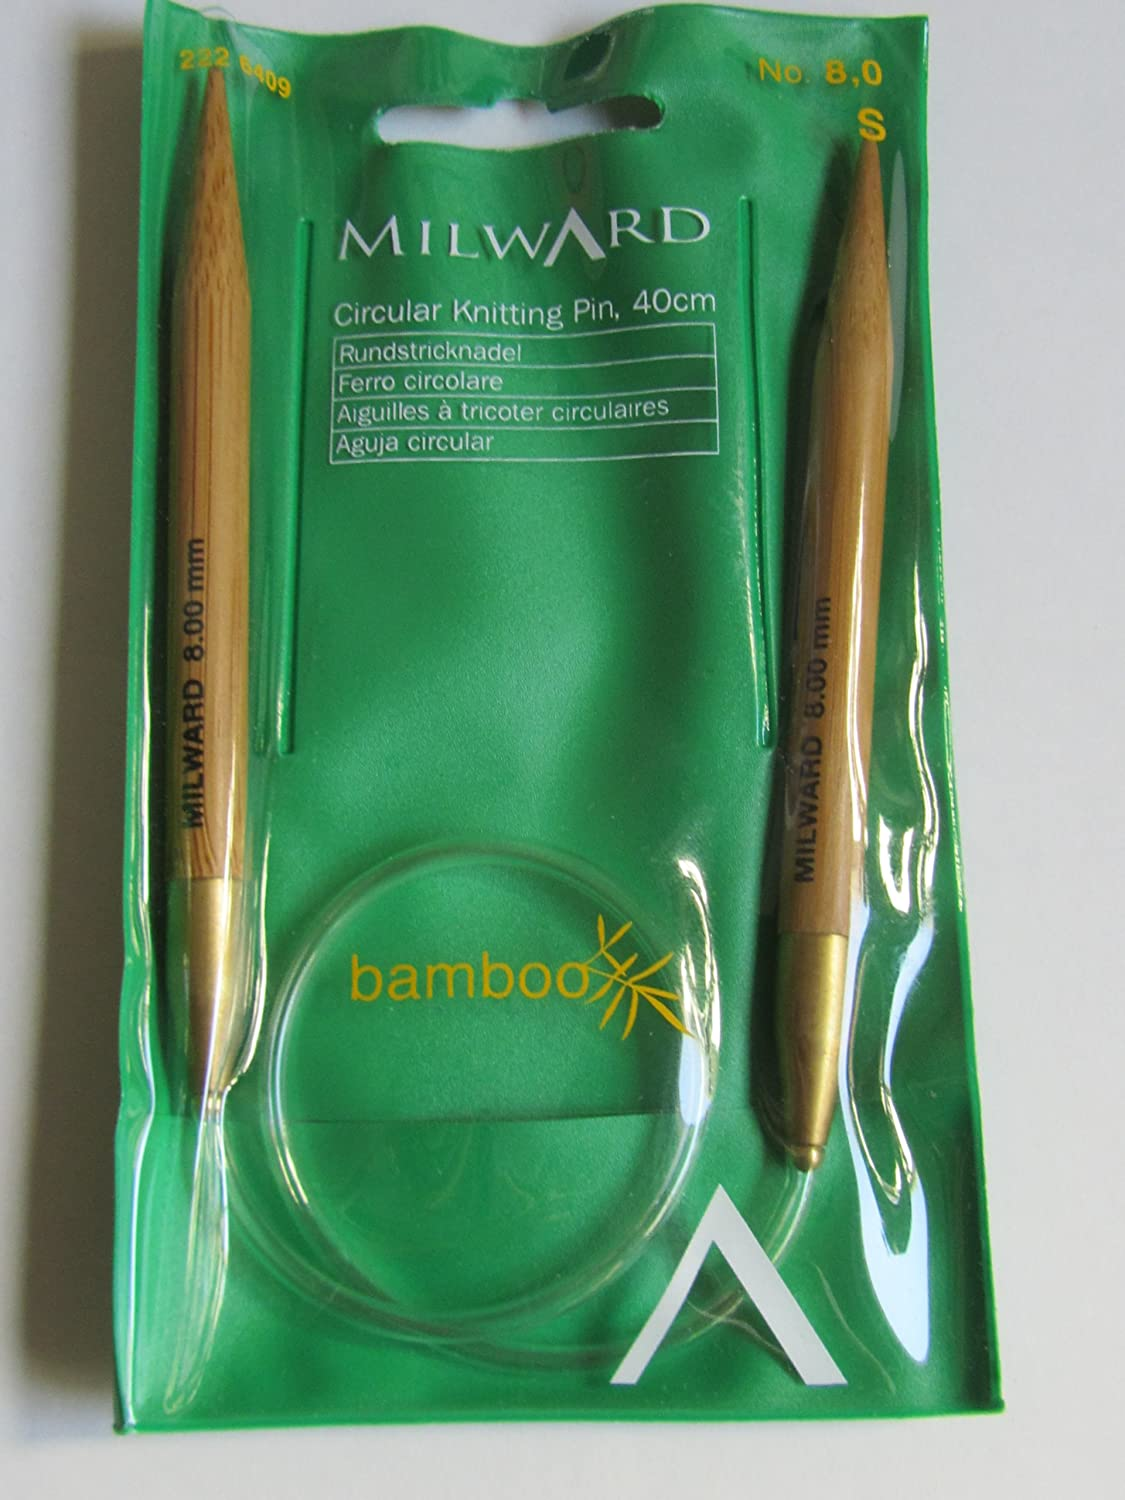 Milward Bamboo Circular Knitting Needle ; 8.0 mm Round 40 cm